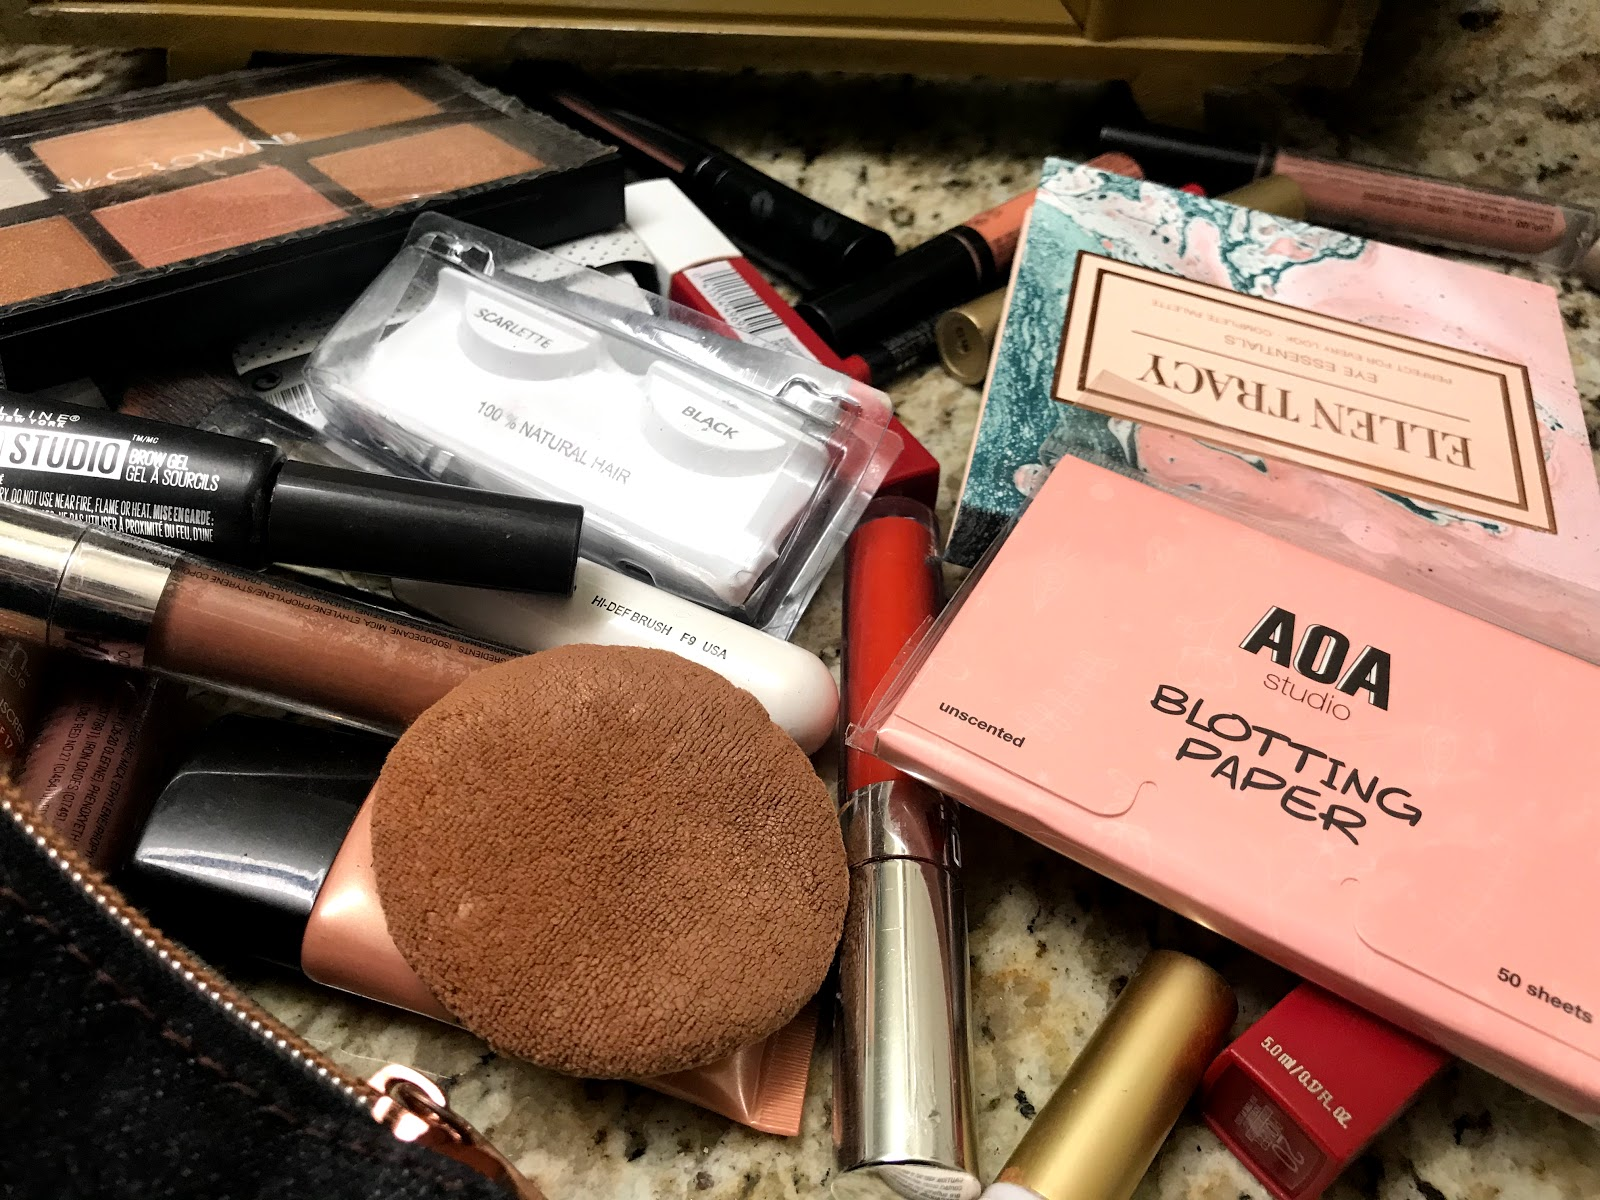 Image: Makeup on desk